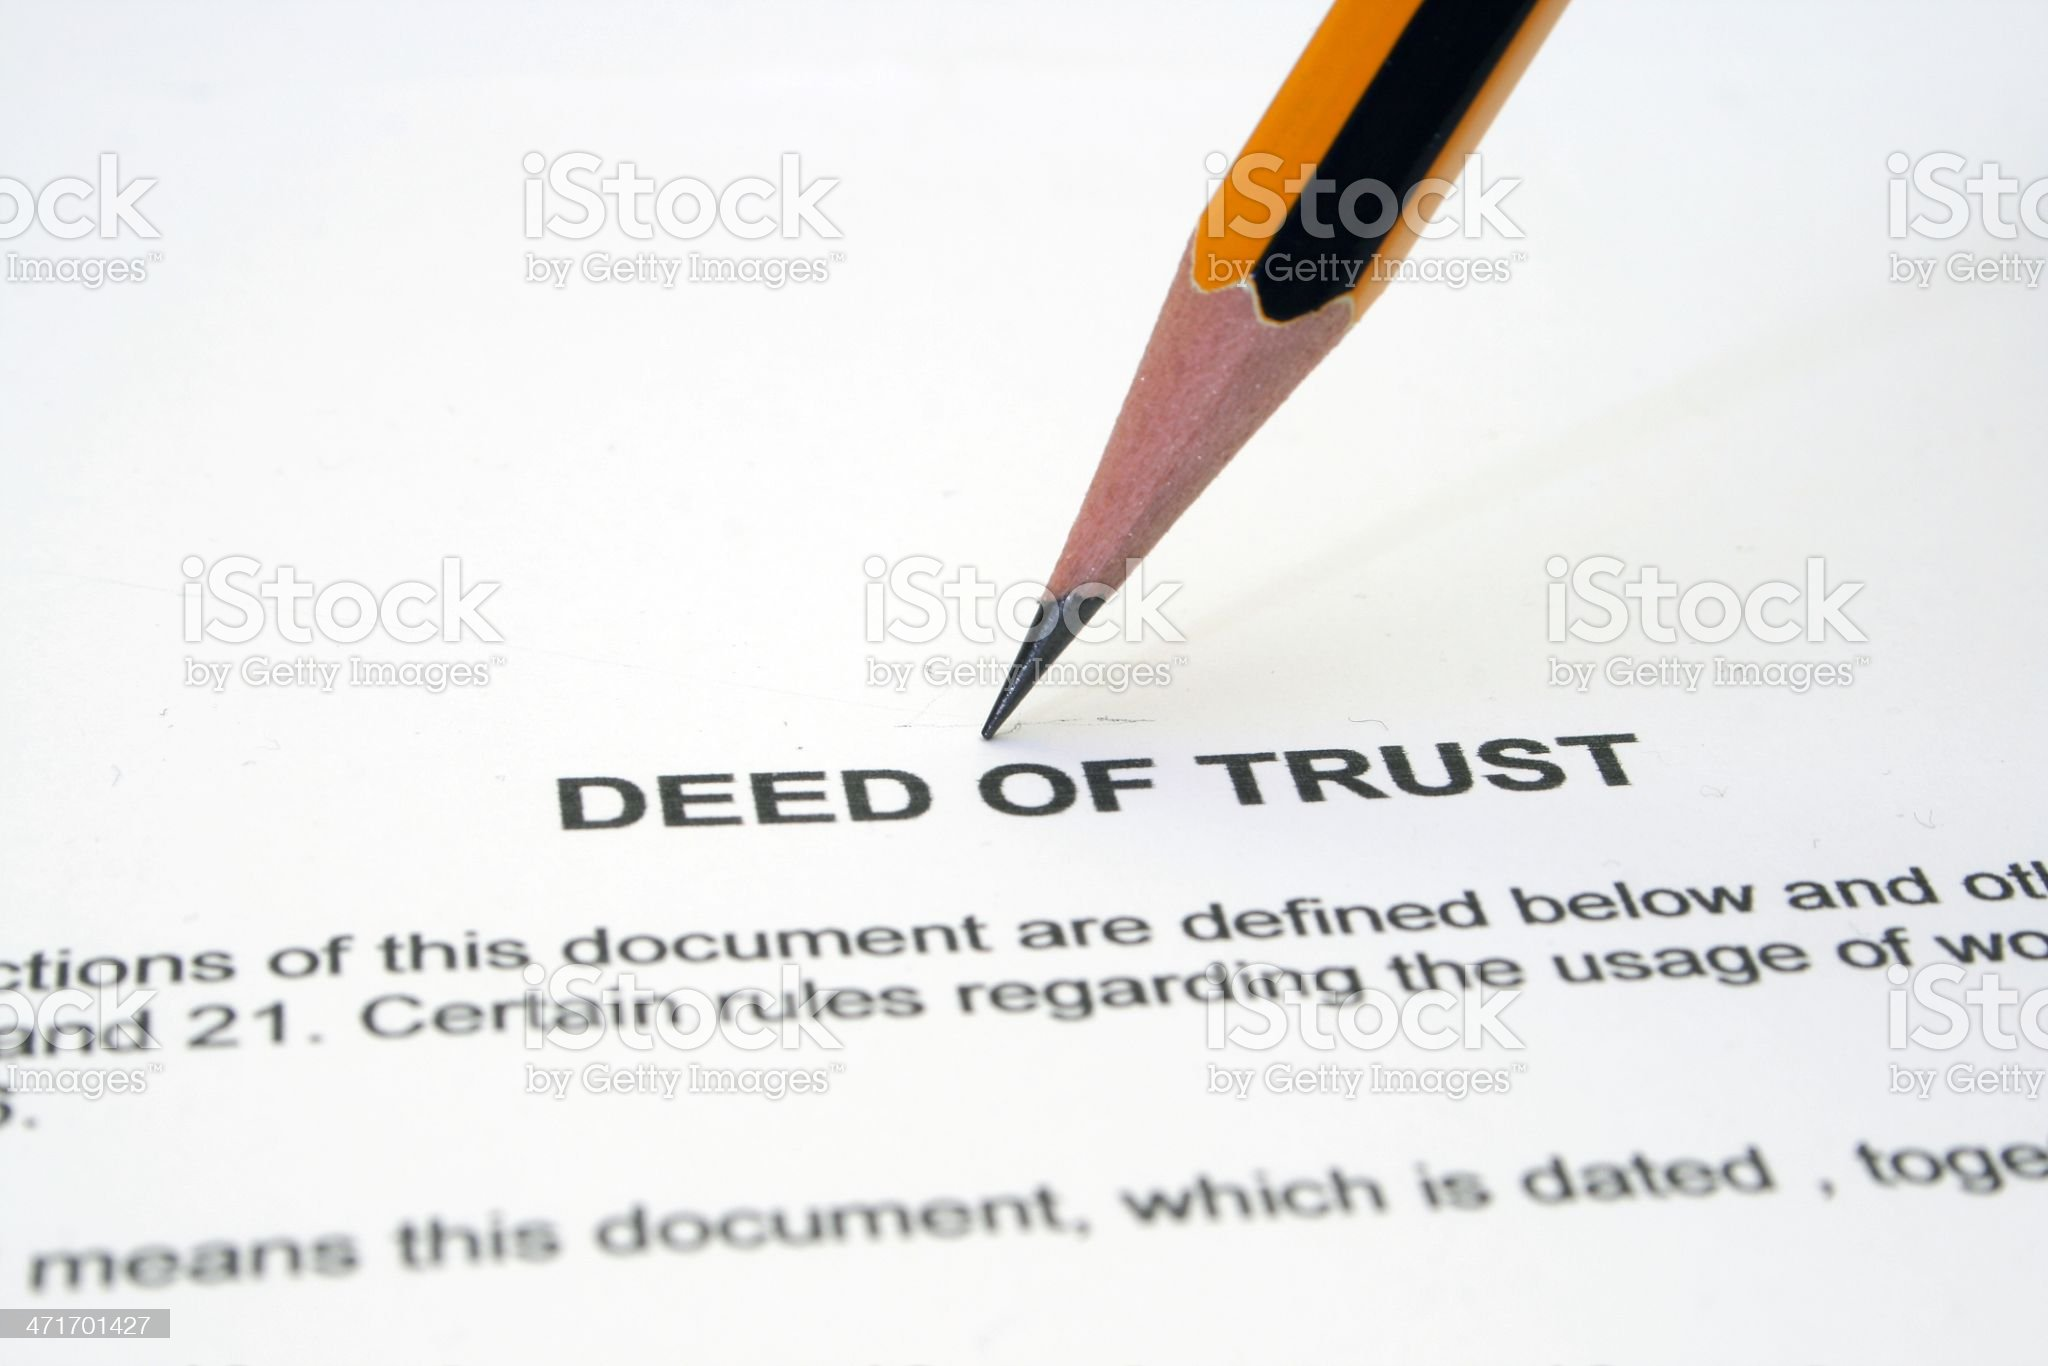 Deed of trust royalty-free stock photo